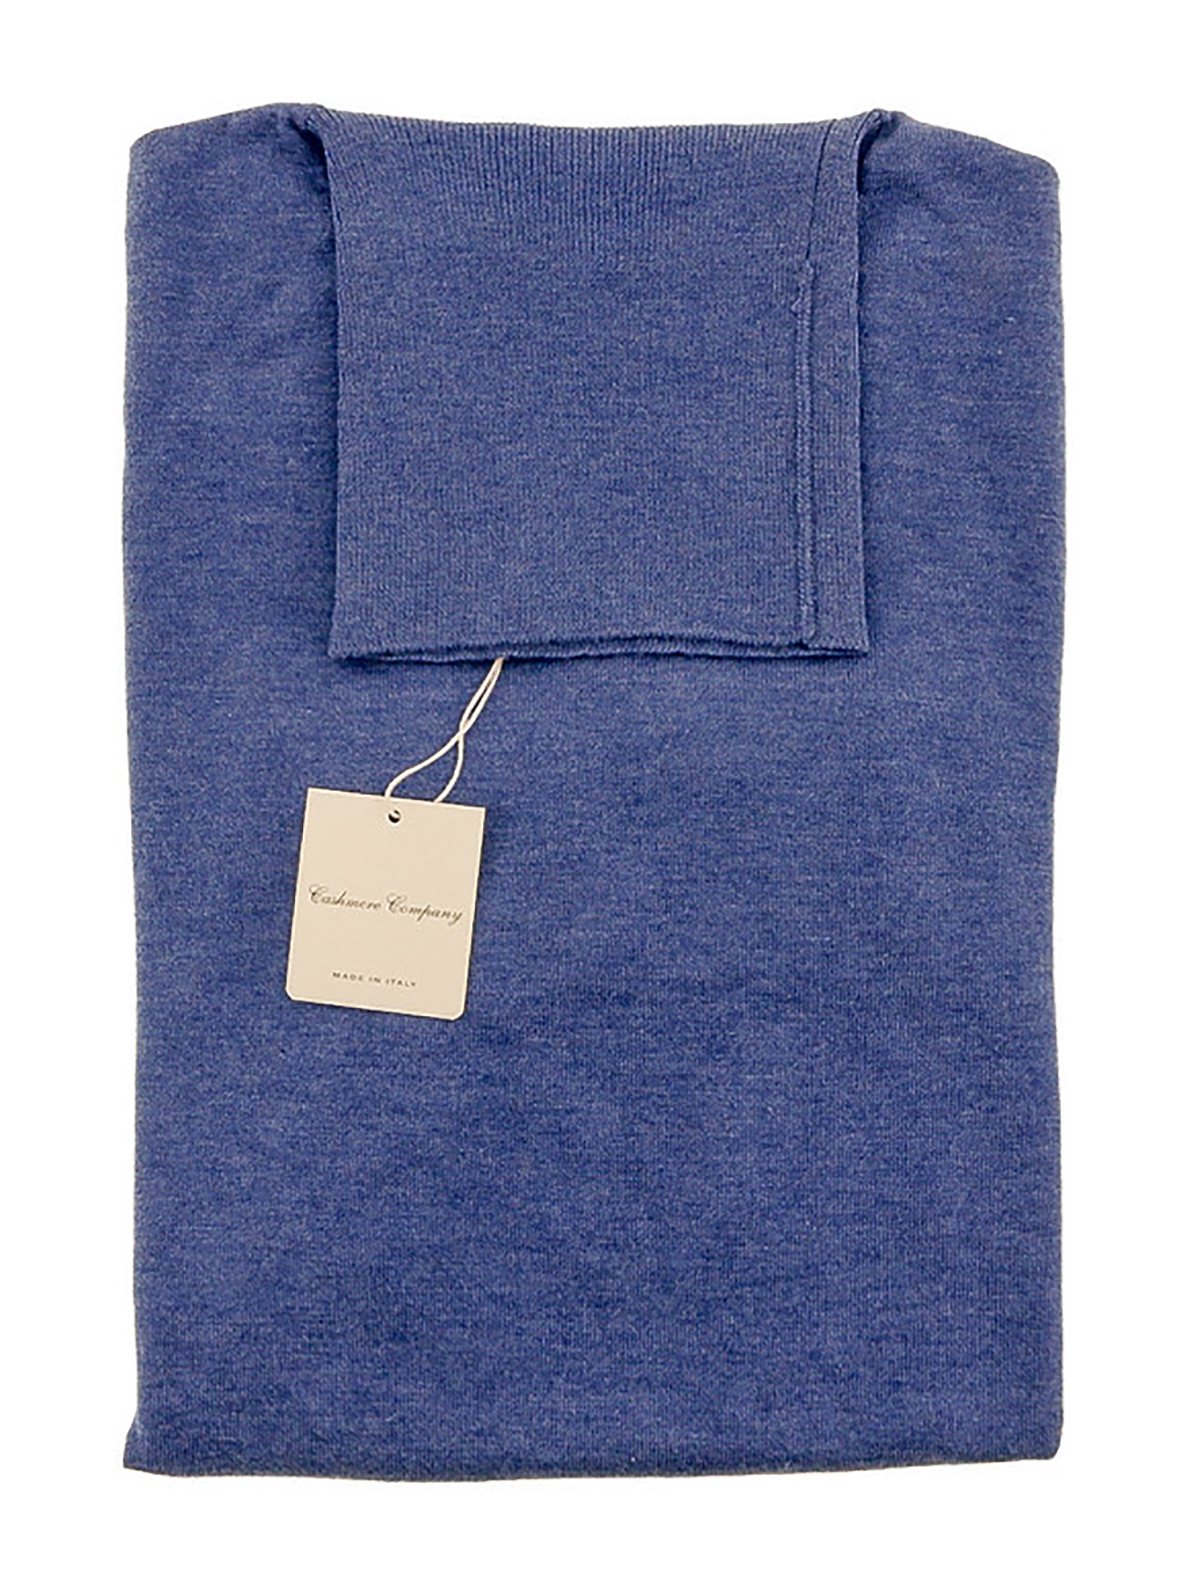 Cashmere Company DOLCE VITA CE Light Blue Roll Neck Cashmere Blend Mens Sweater